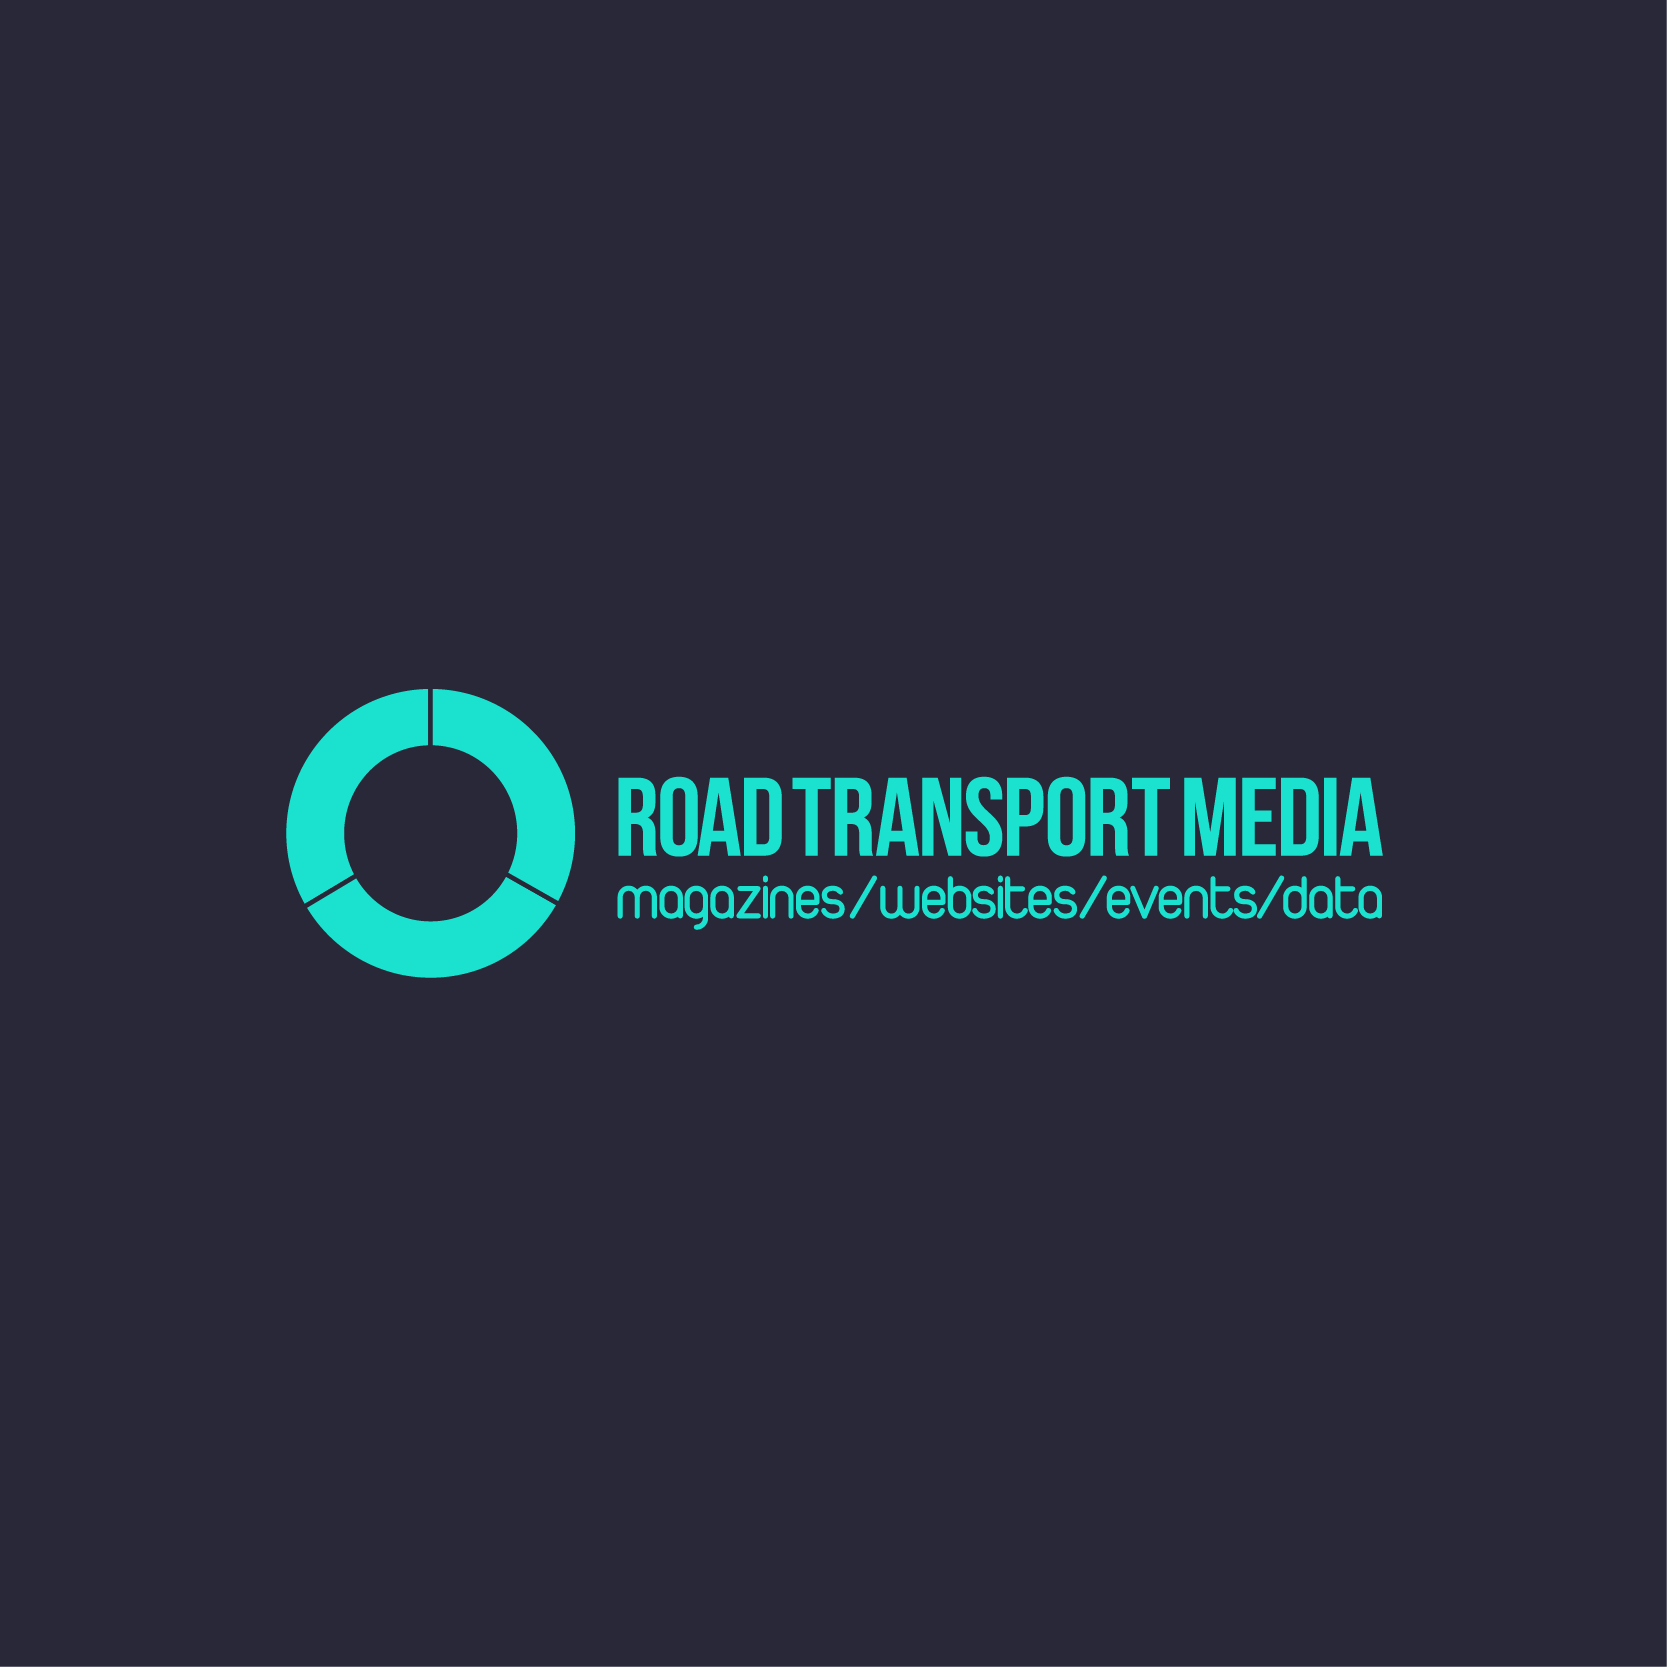 Logos_Road_Transport_Media_Logo.png